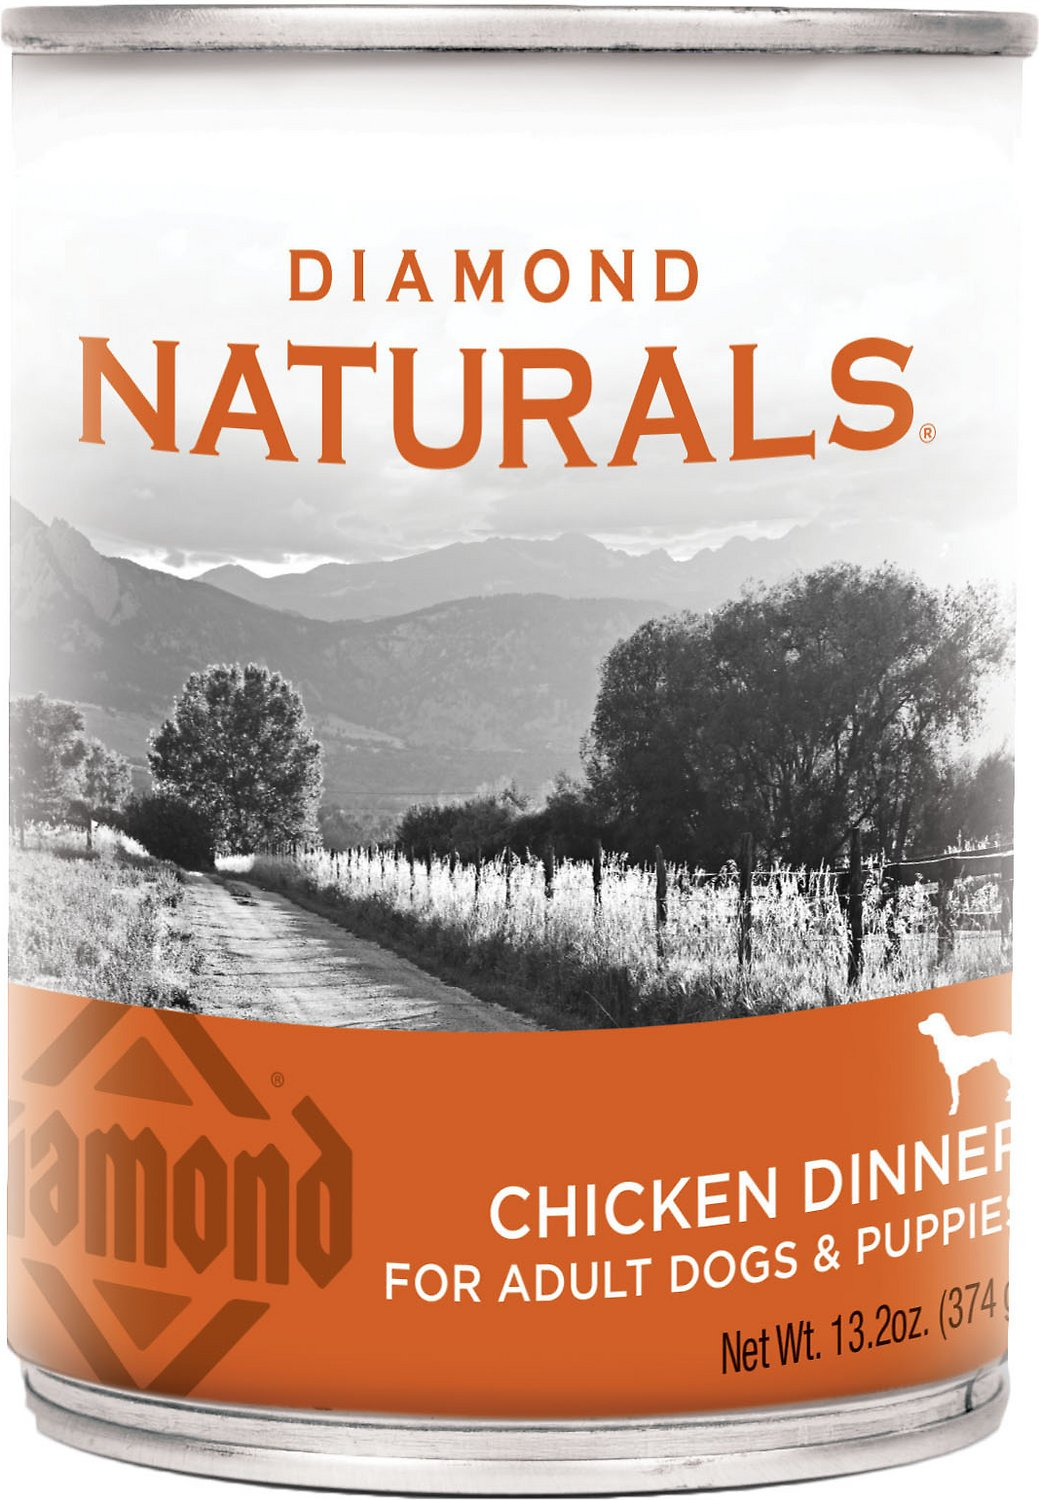 Diamond Naturals Chicken Dinner Adult & Puppy Canned Dog Food, 13.2-oz